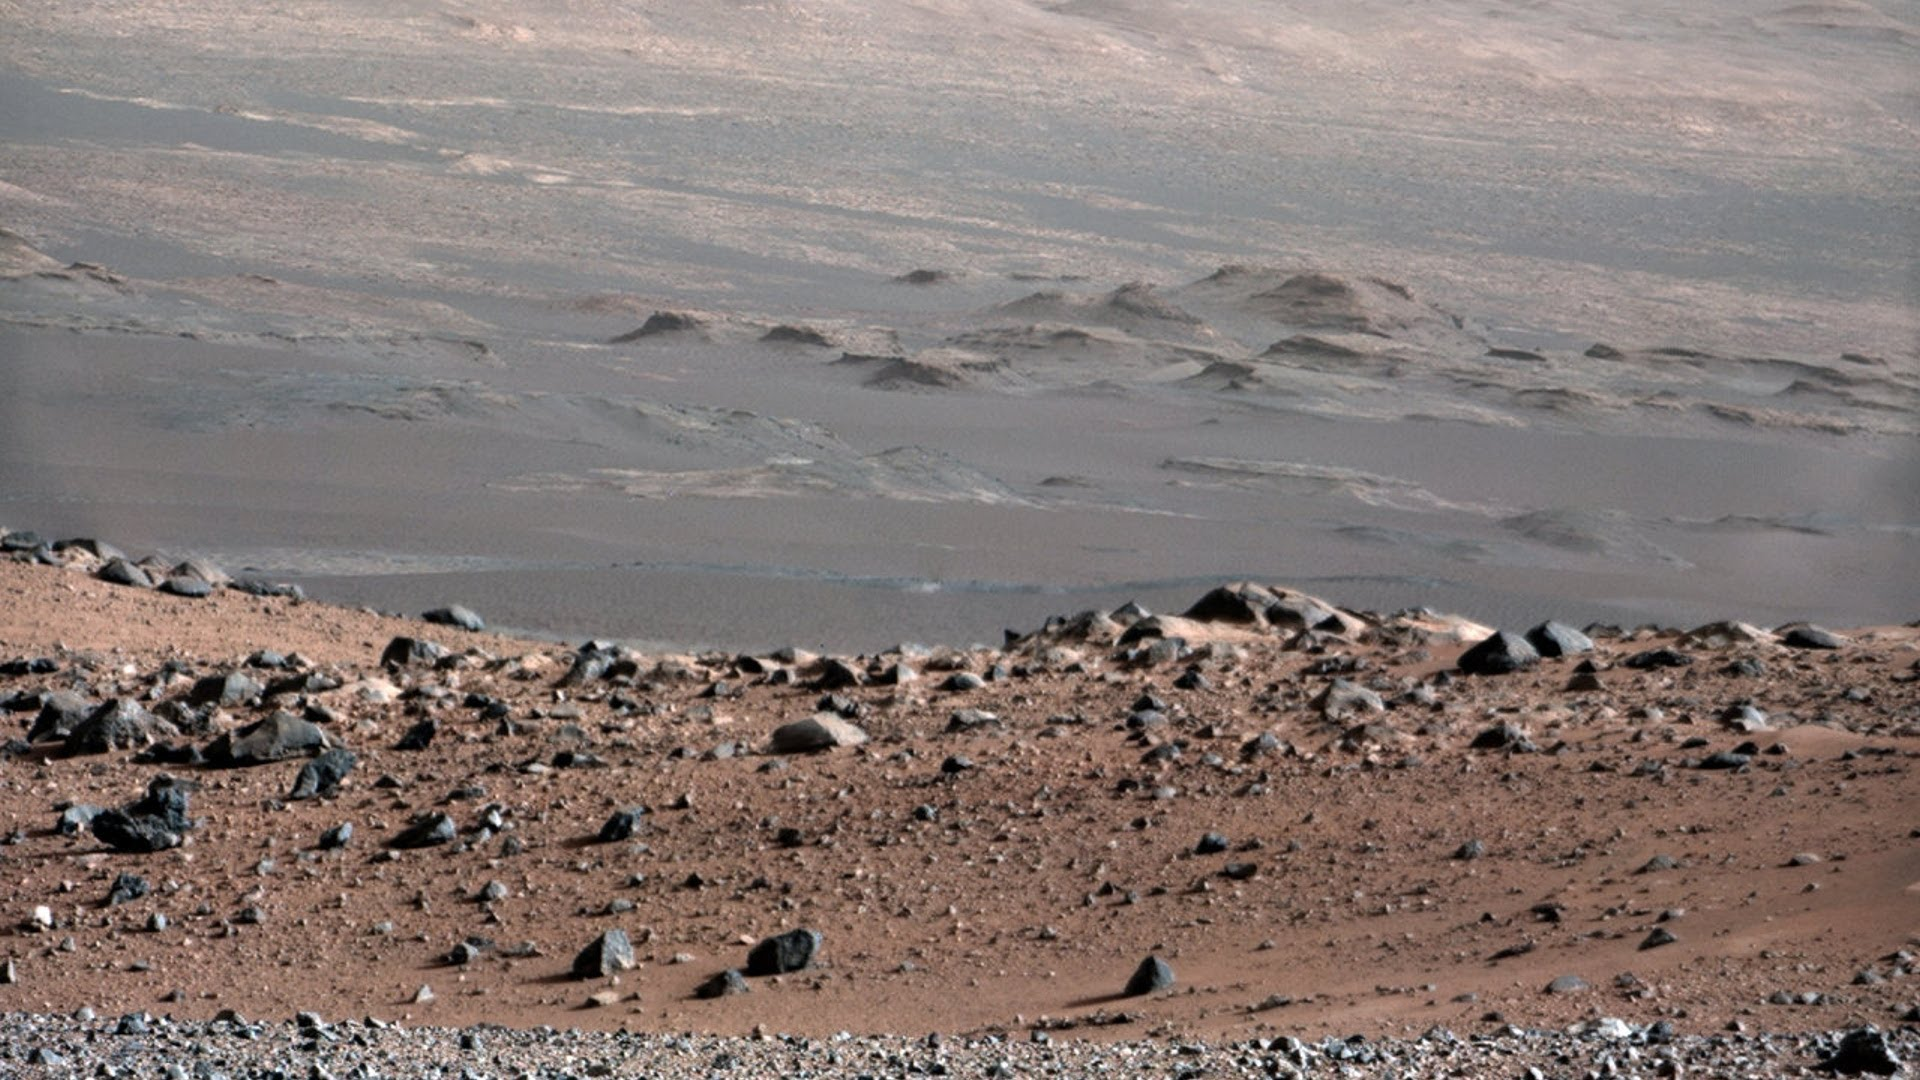 footage landing on mars - photo #4